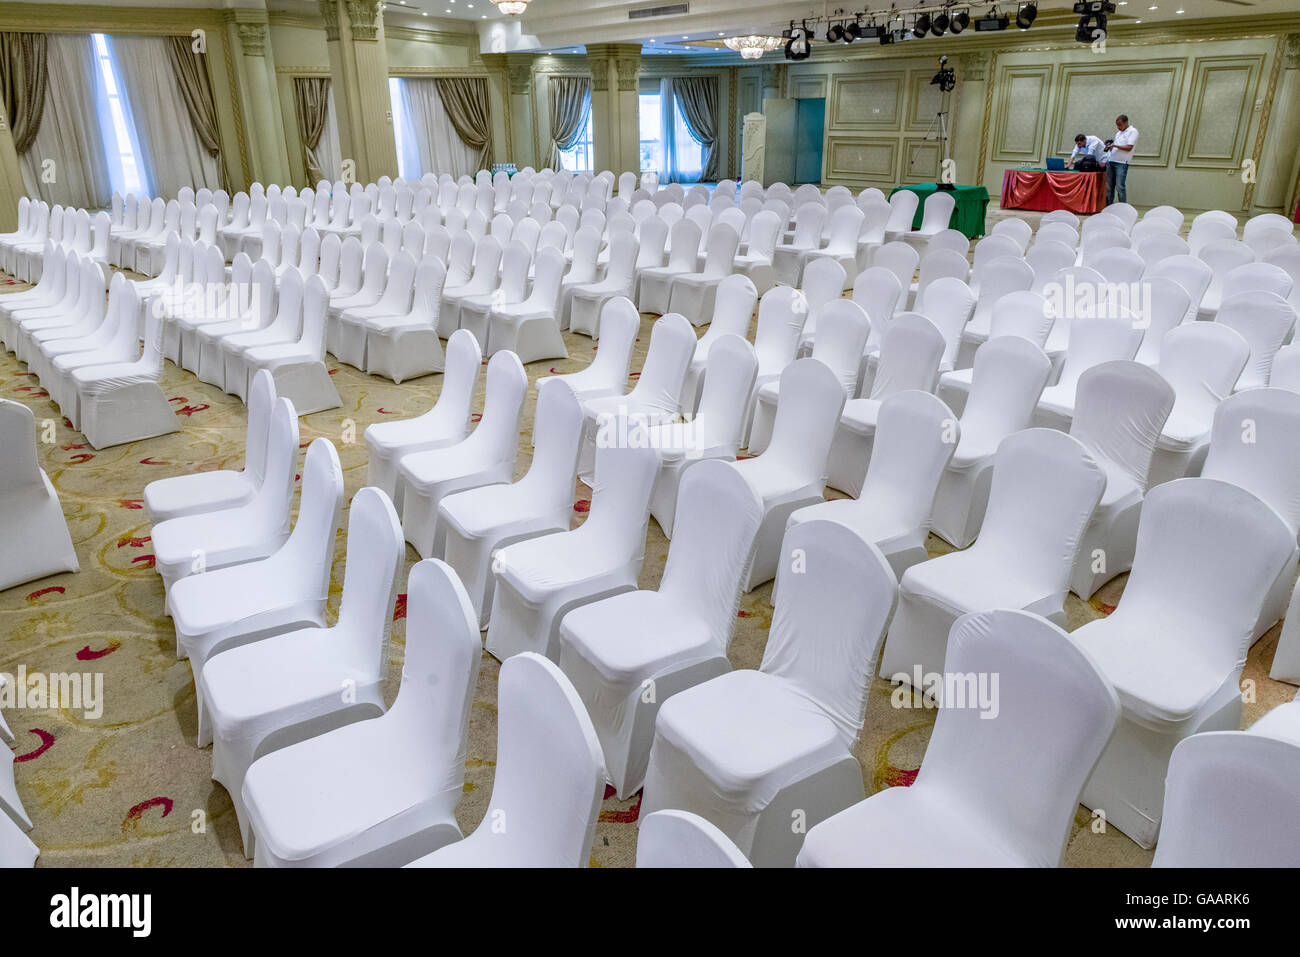 chairs wedding hall ergonomic chair journal marriage stage stock photos and images